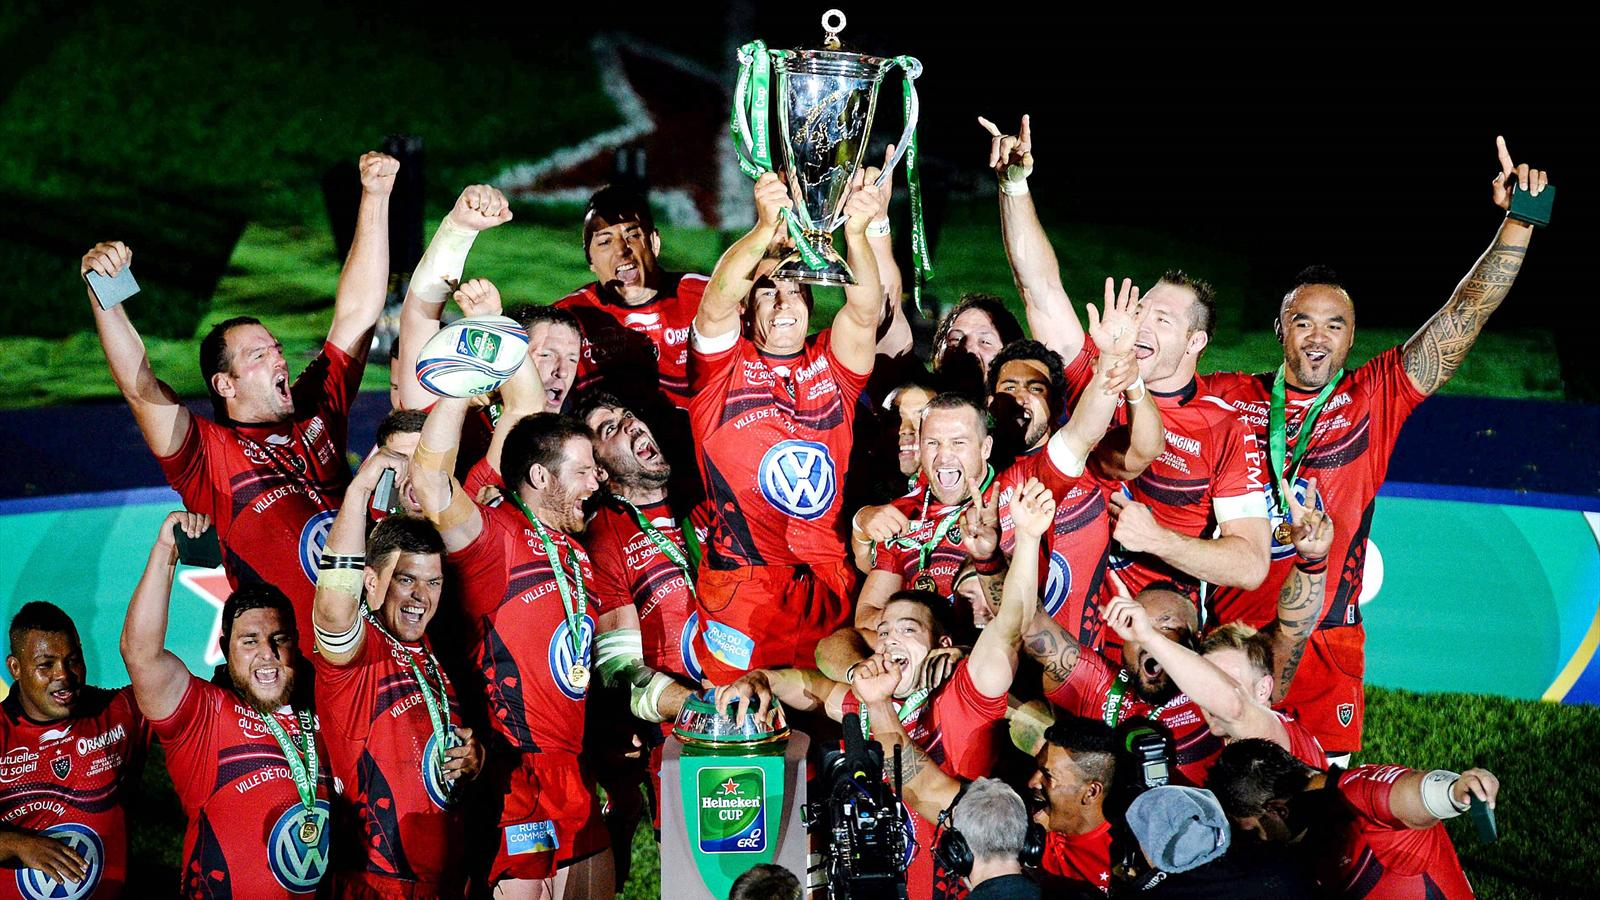 H cup coupe d 39 europe rugby r sultats calendriers classements rugbyrama - Coupe d europe de rugby classement ...